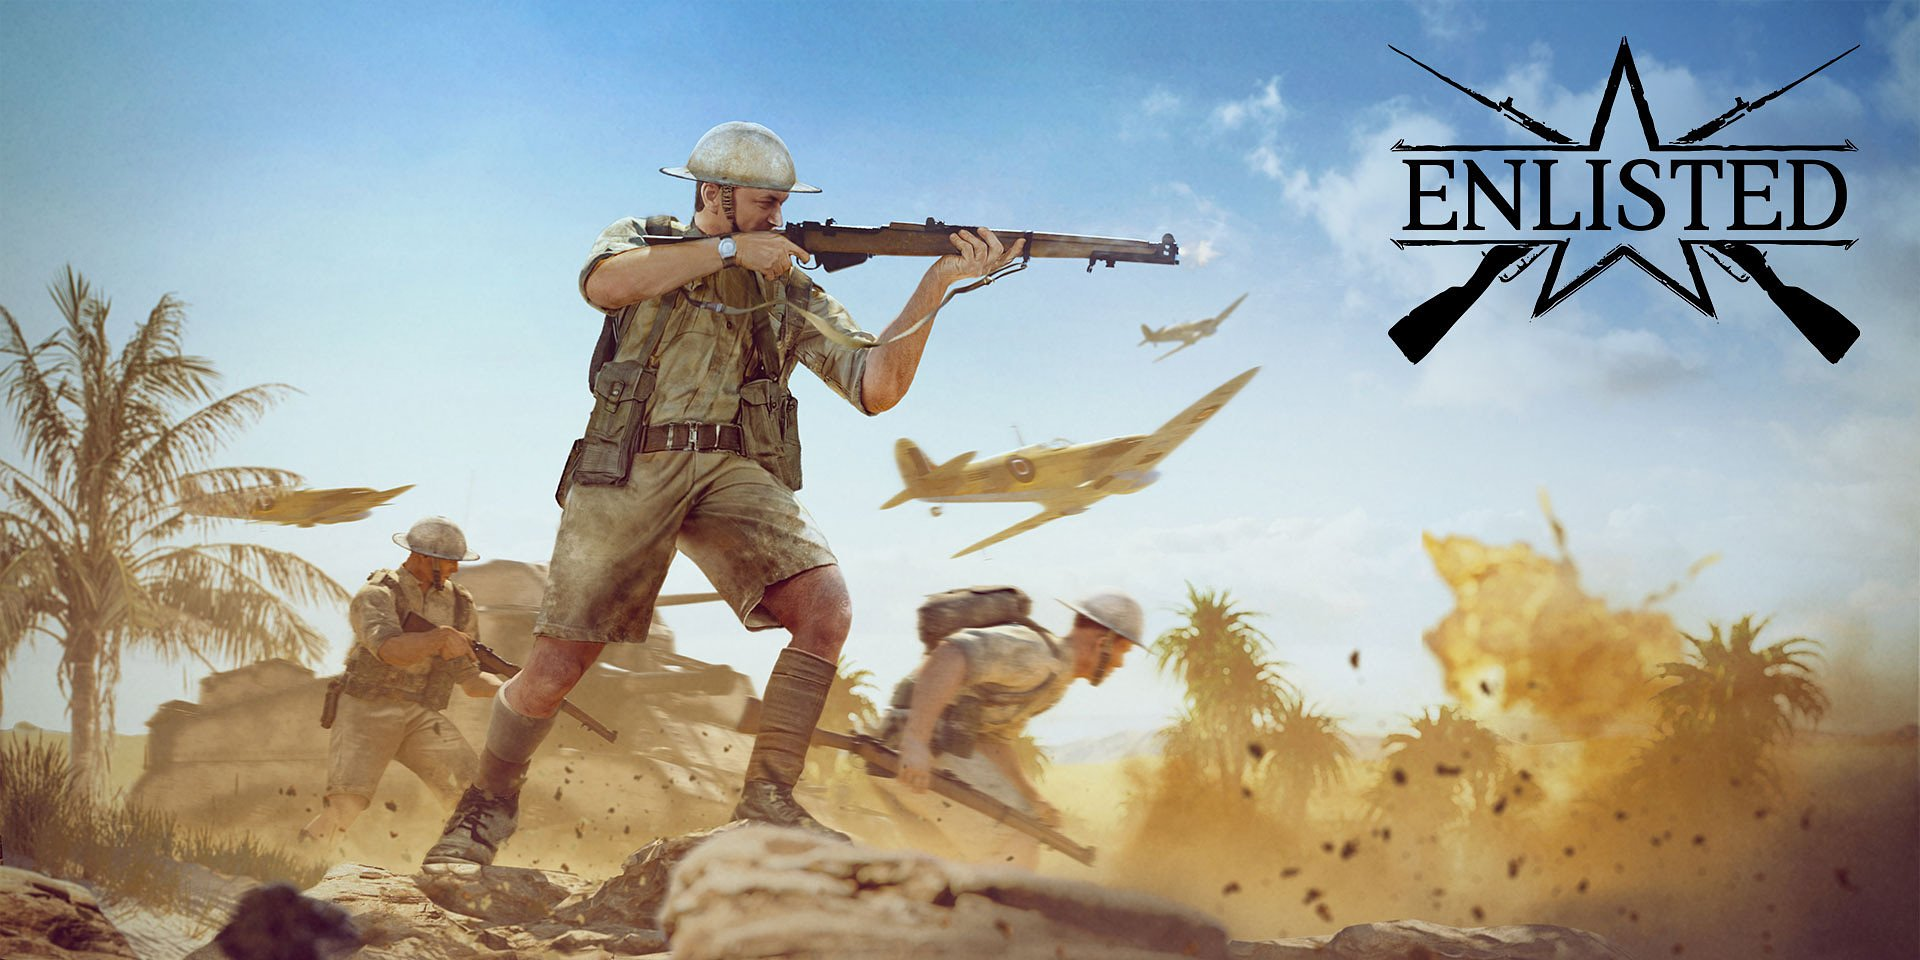 Battle of Tunisia campaign CBT started in Enlisted